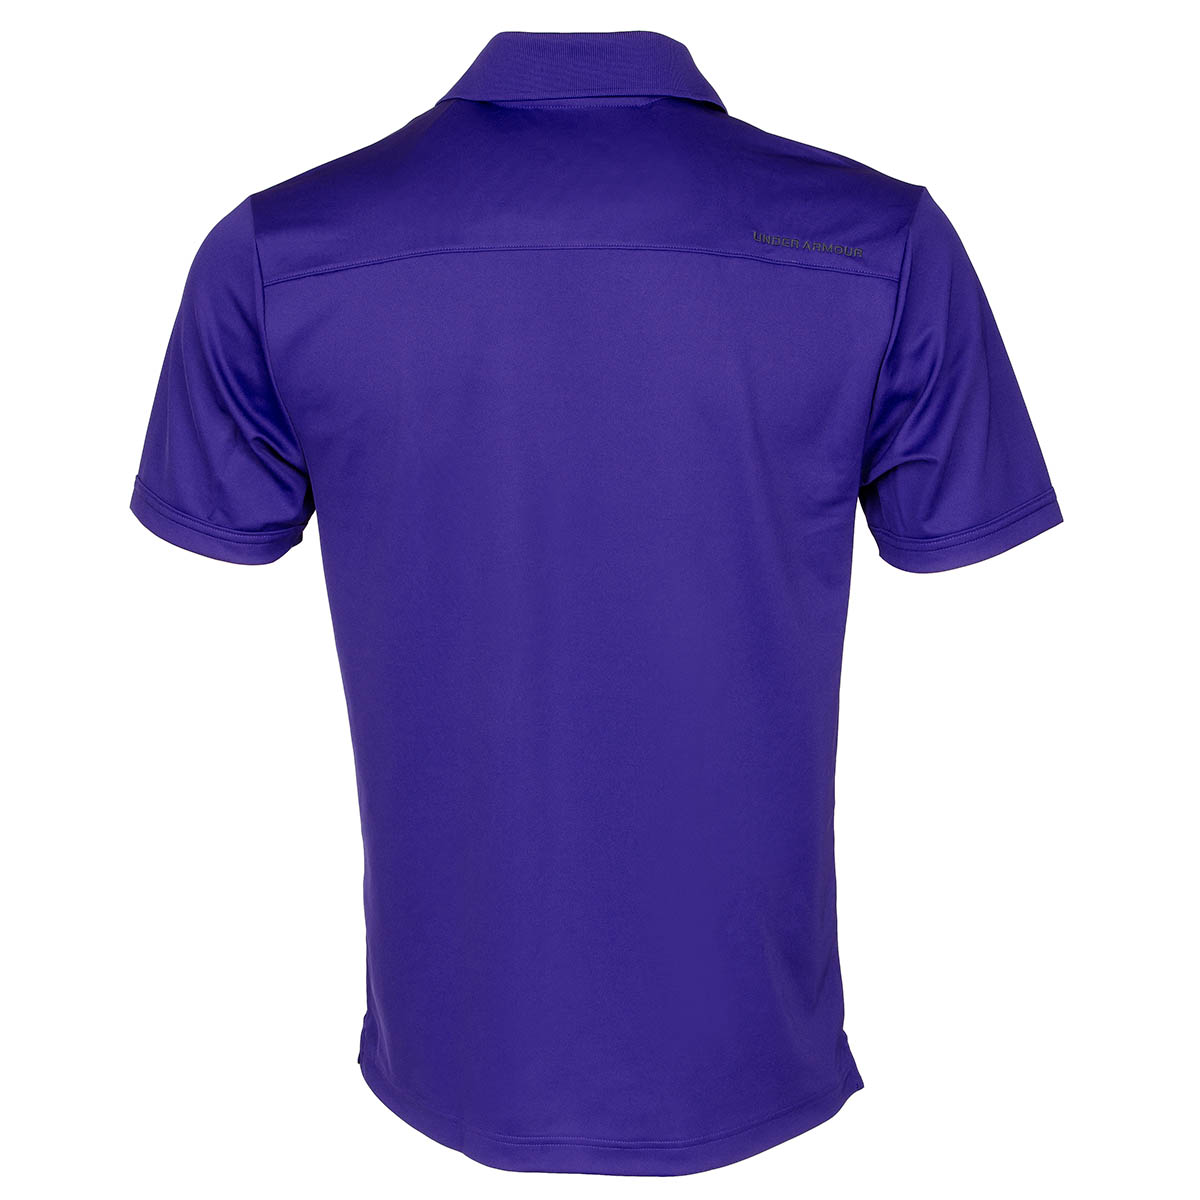 Under armour performance polo shirt monarchy stealth grey for Under armour embroidered polo shirts